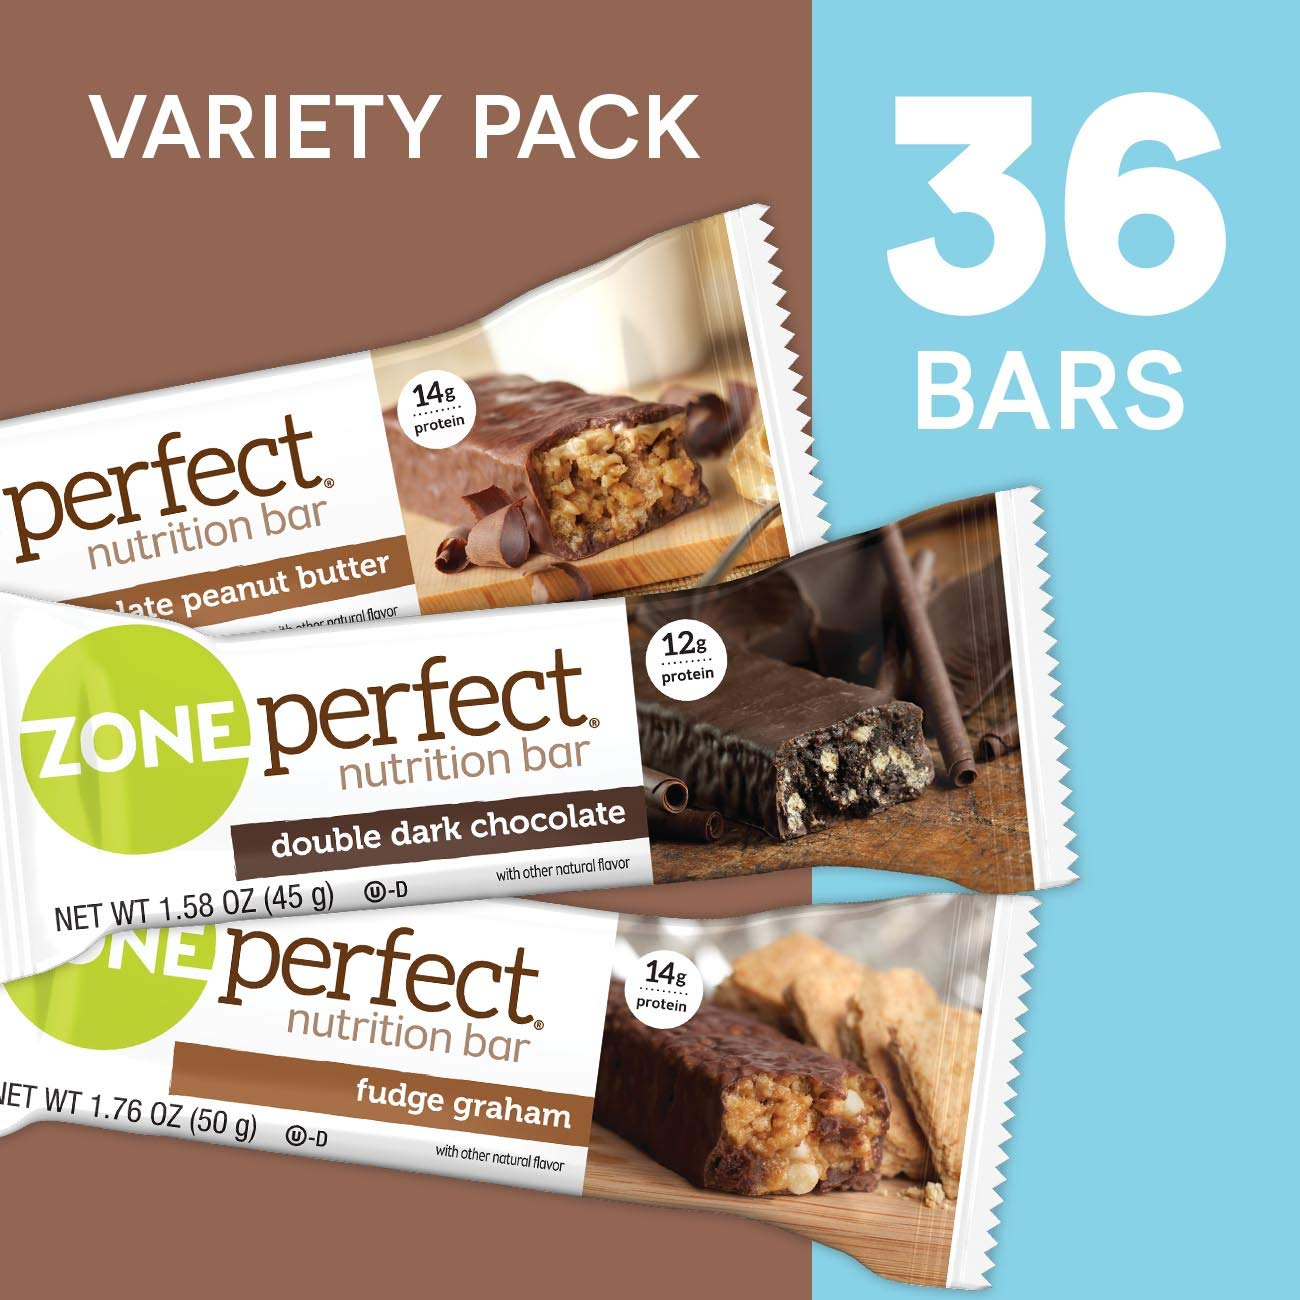 ZonePerfect Protein Bars, Variety Pack, High Protein, With Vitamins & Minerals (36 Count) by Zoneperfect Classic